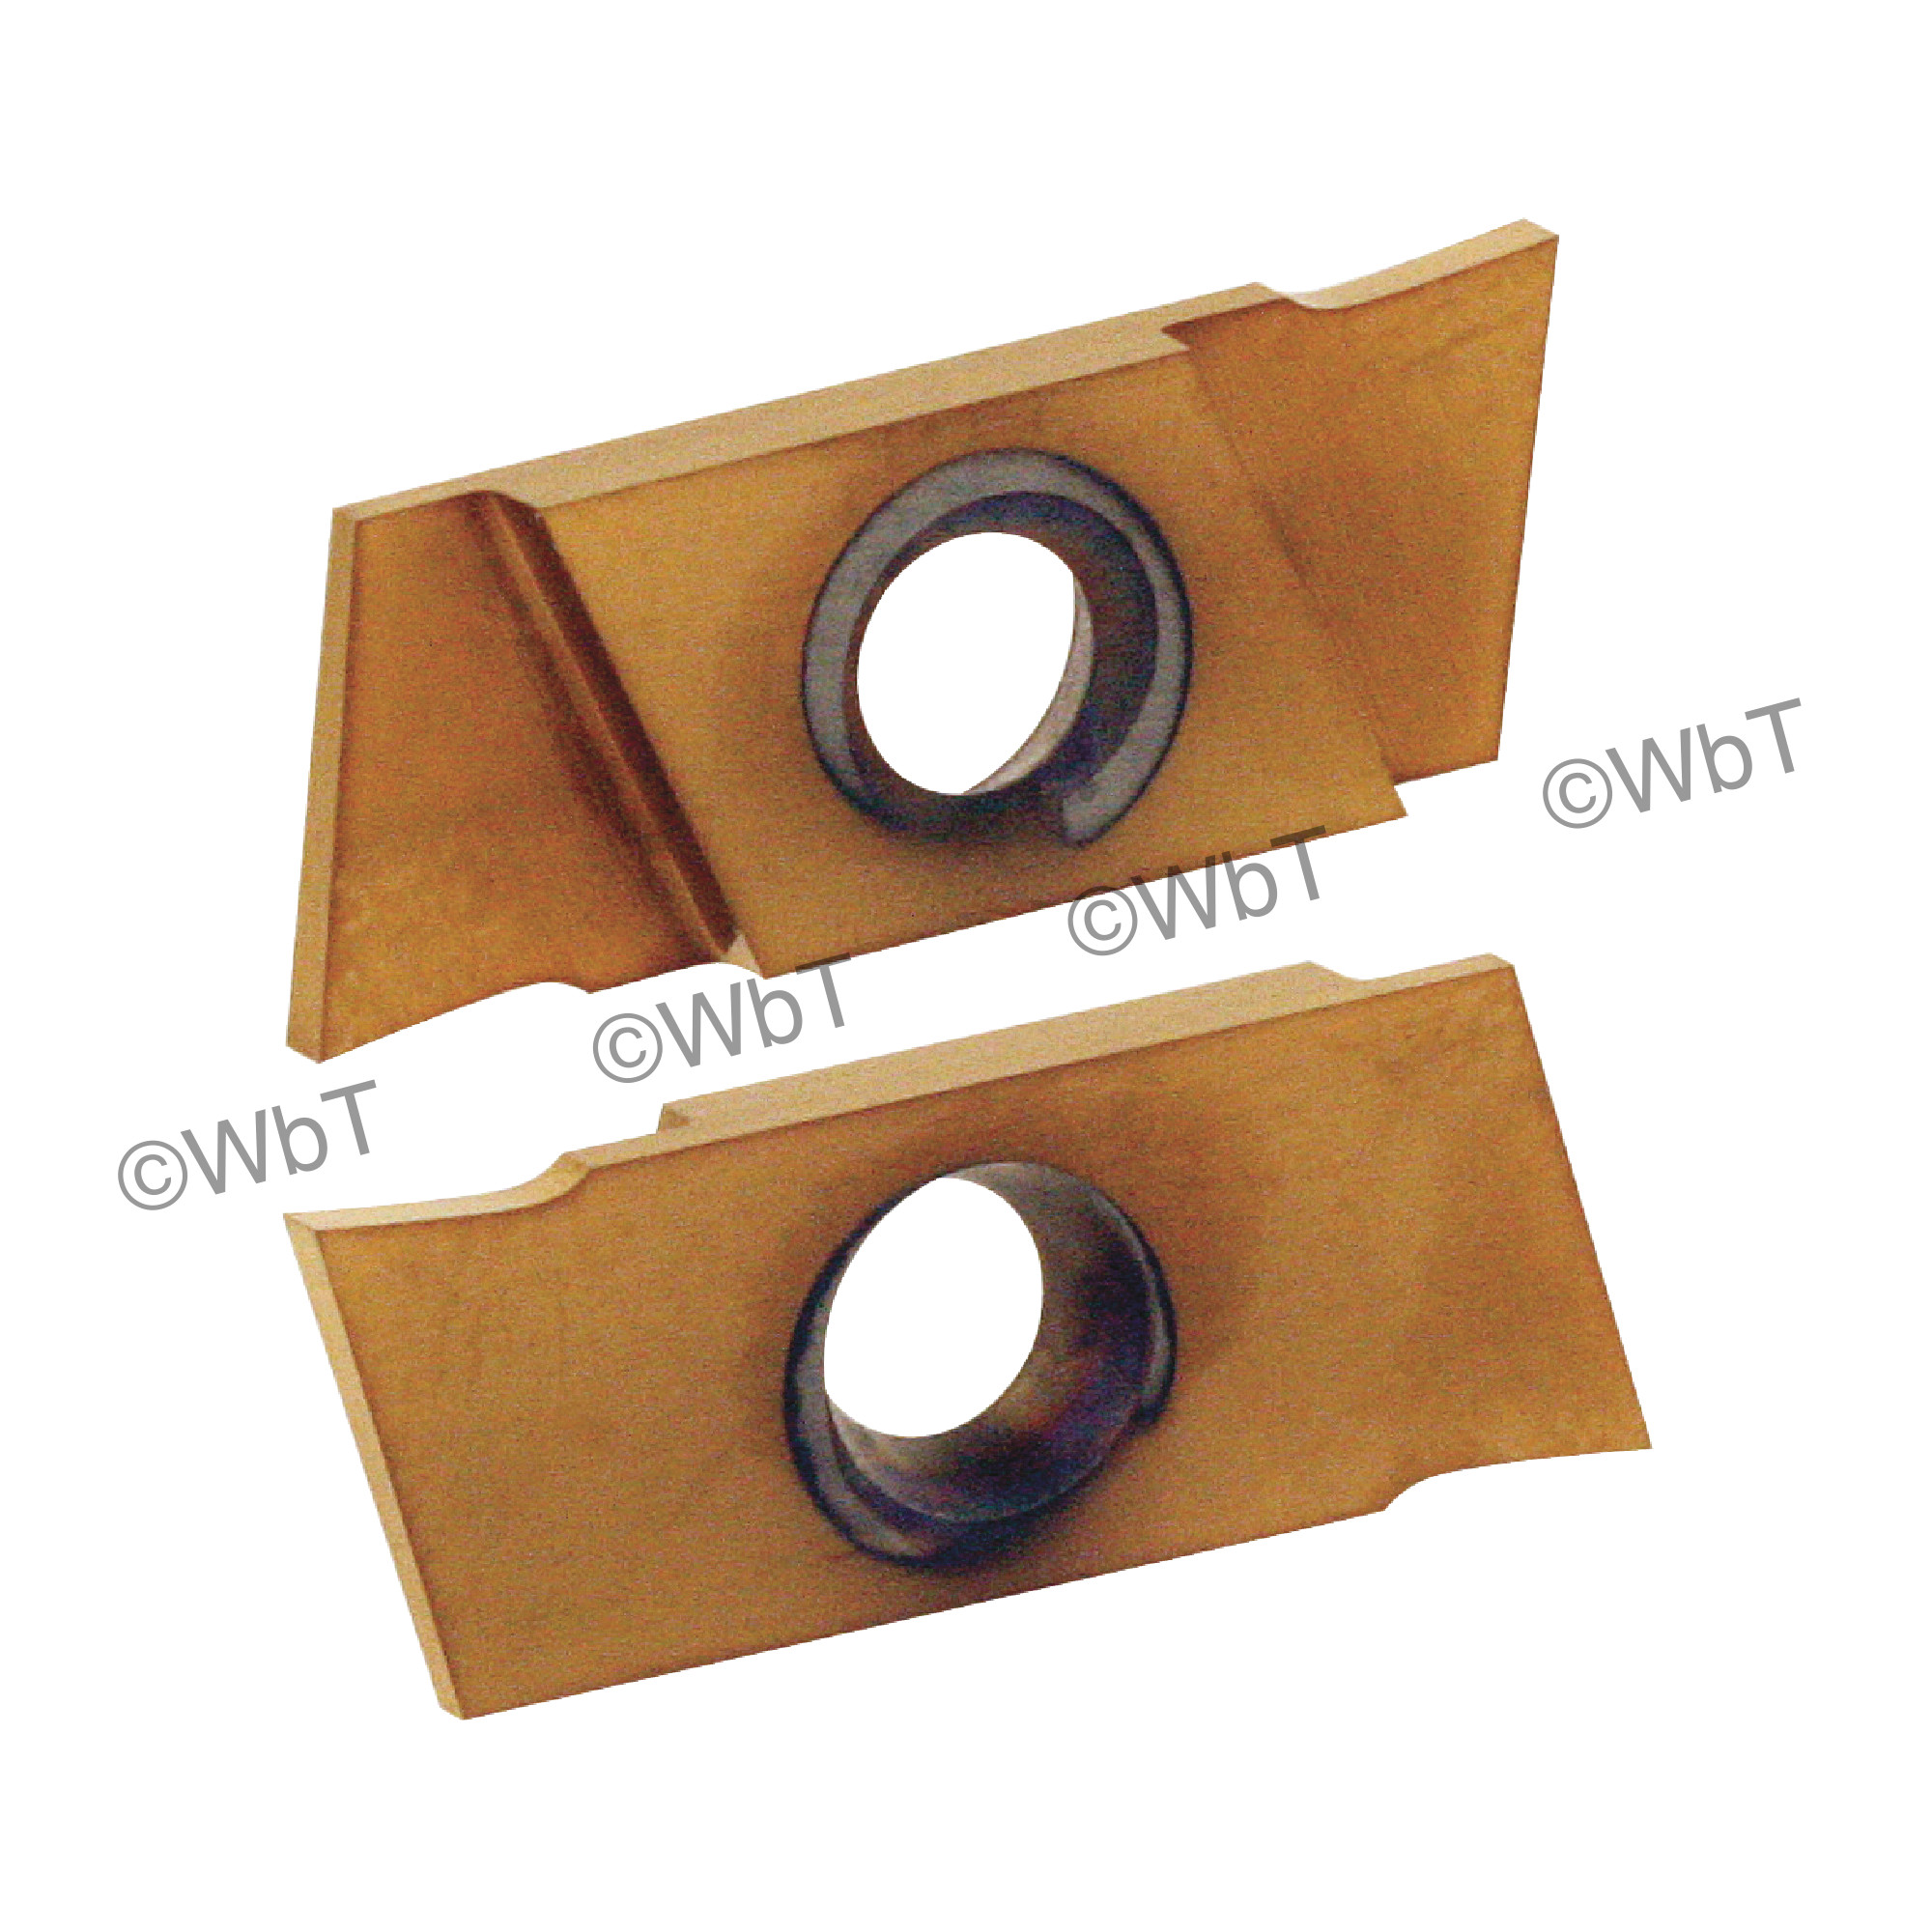 """NIKCOLE - GIE-7-GP-1.0RN C6-PV / Indexable Carbide Insert for Grooving & Parting / 0.039"""" Cutting Width / Right Hand"""